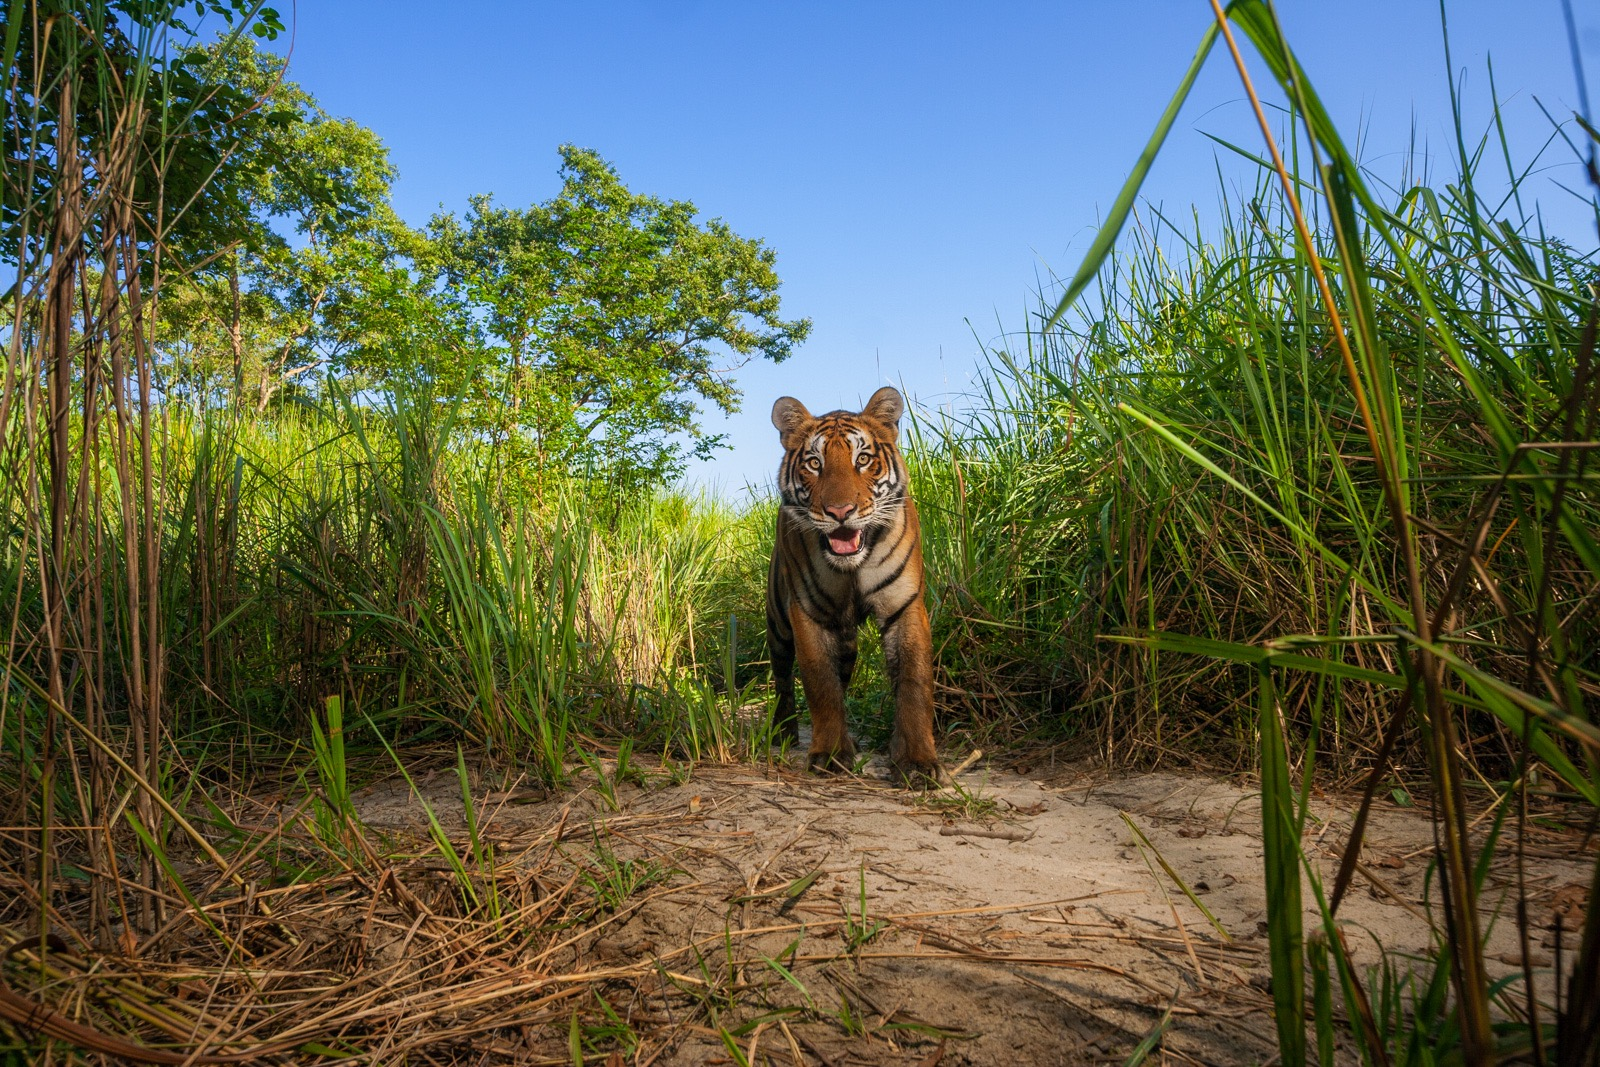 Tigers live in perhaps the highest density in Kaziranga National Park of any place in India. In other national parks in India, tigers are in greater peril, but poachers here tend to target the Indian one-horned rhinos instead. Here, a young male emerges from the elephant grass. © Steve Winter